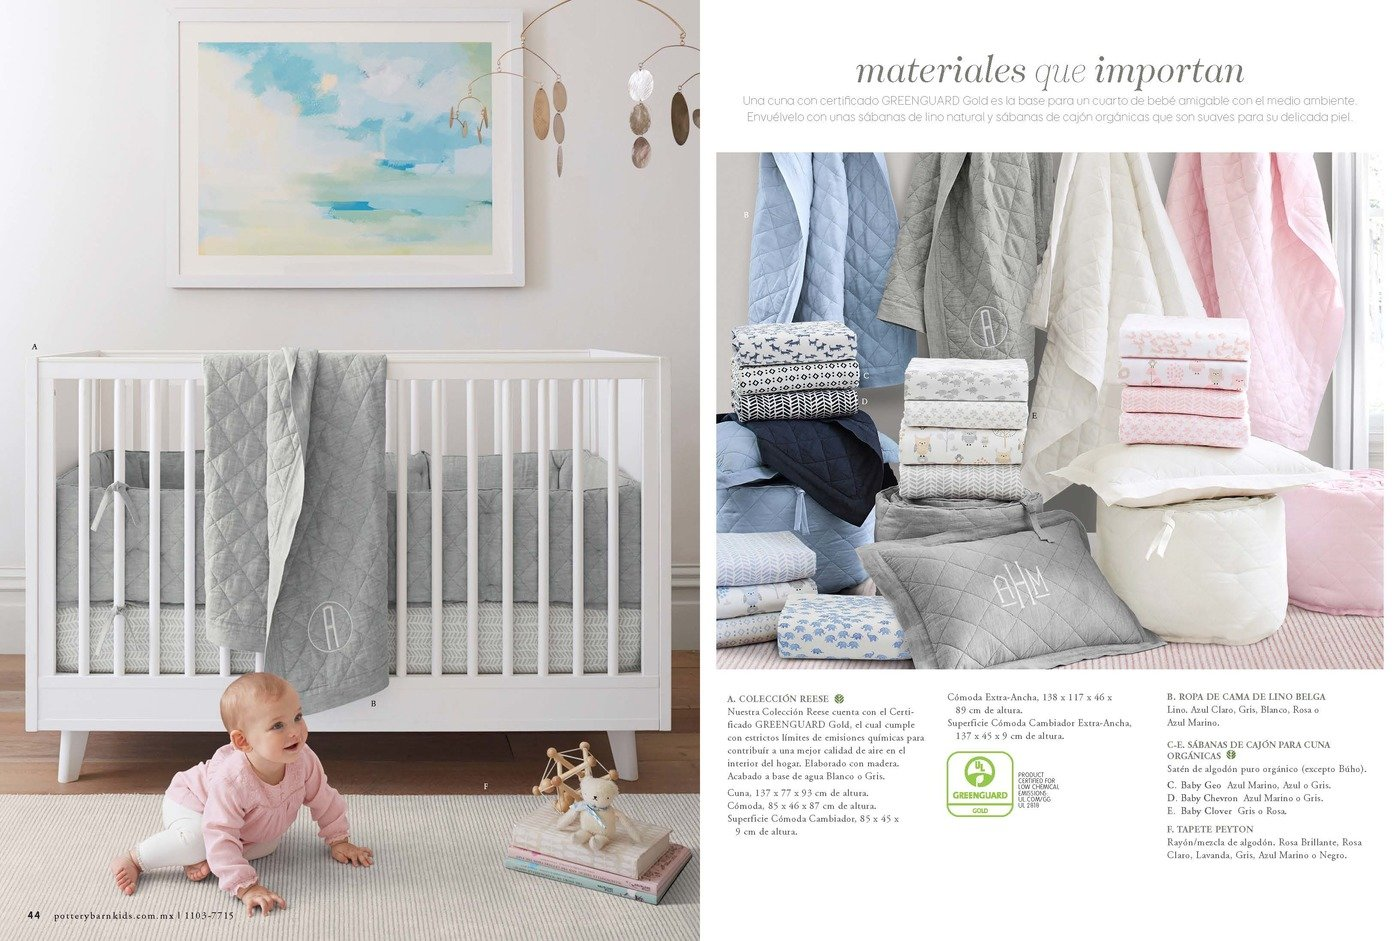 Pottery Barn Kids – Mexico Catalog by Dirk Schryver at Coroflot.com